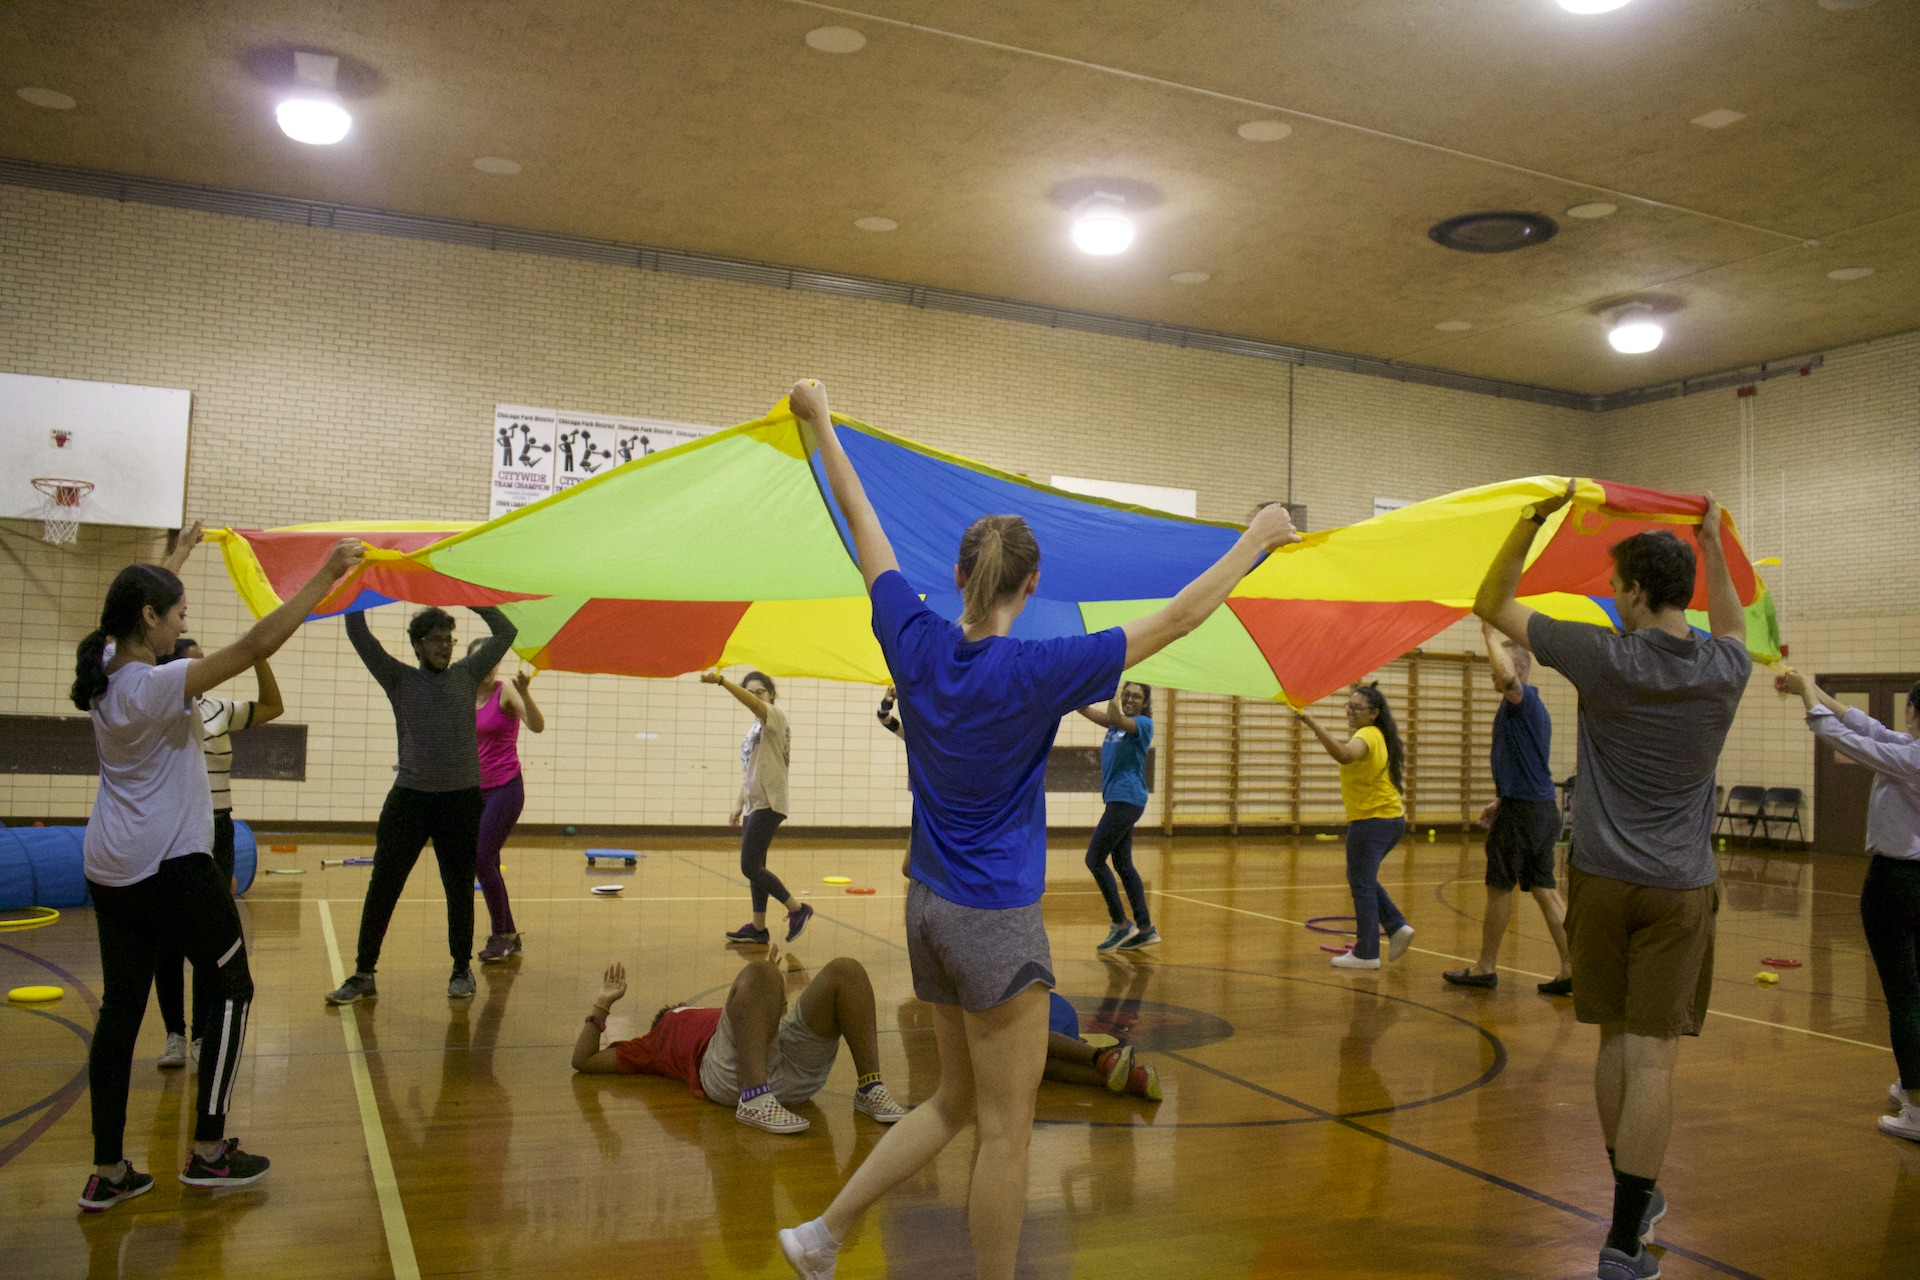 A KEEN Chicago session at Loyola Park winds down with parachute fun with the athletes.